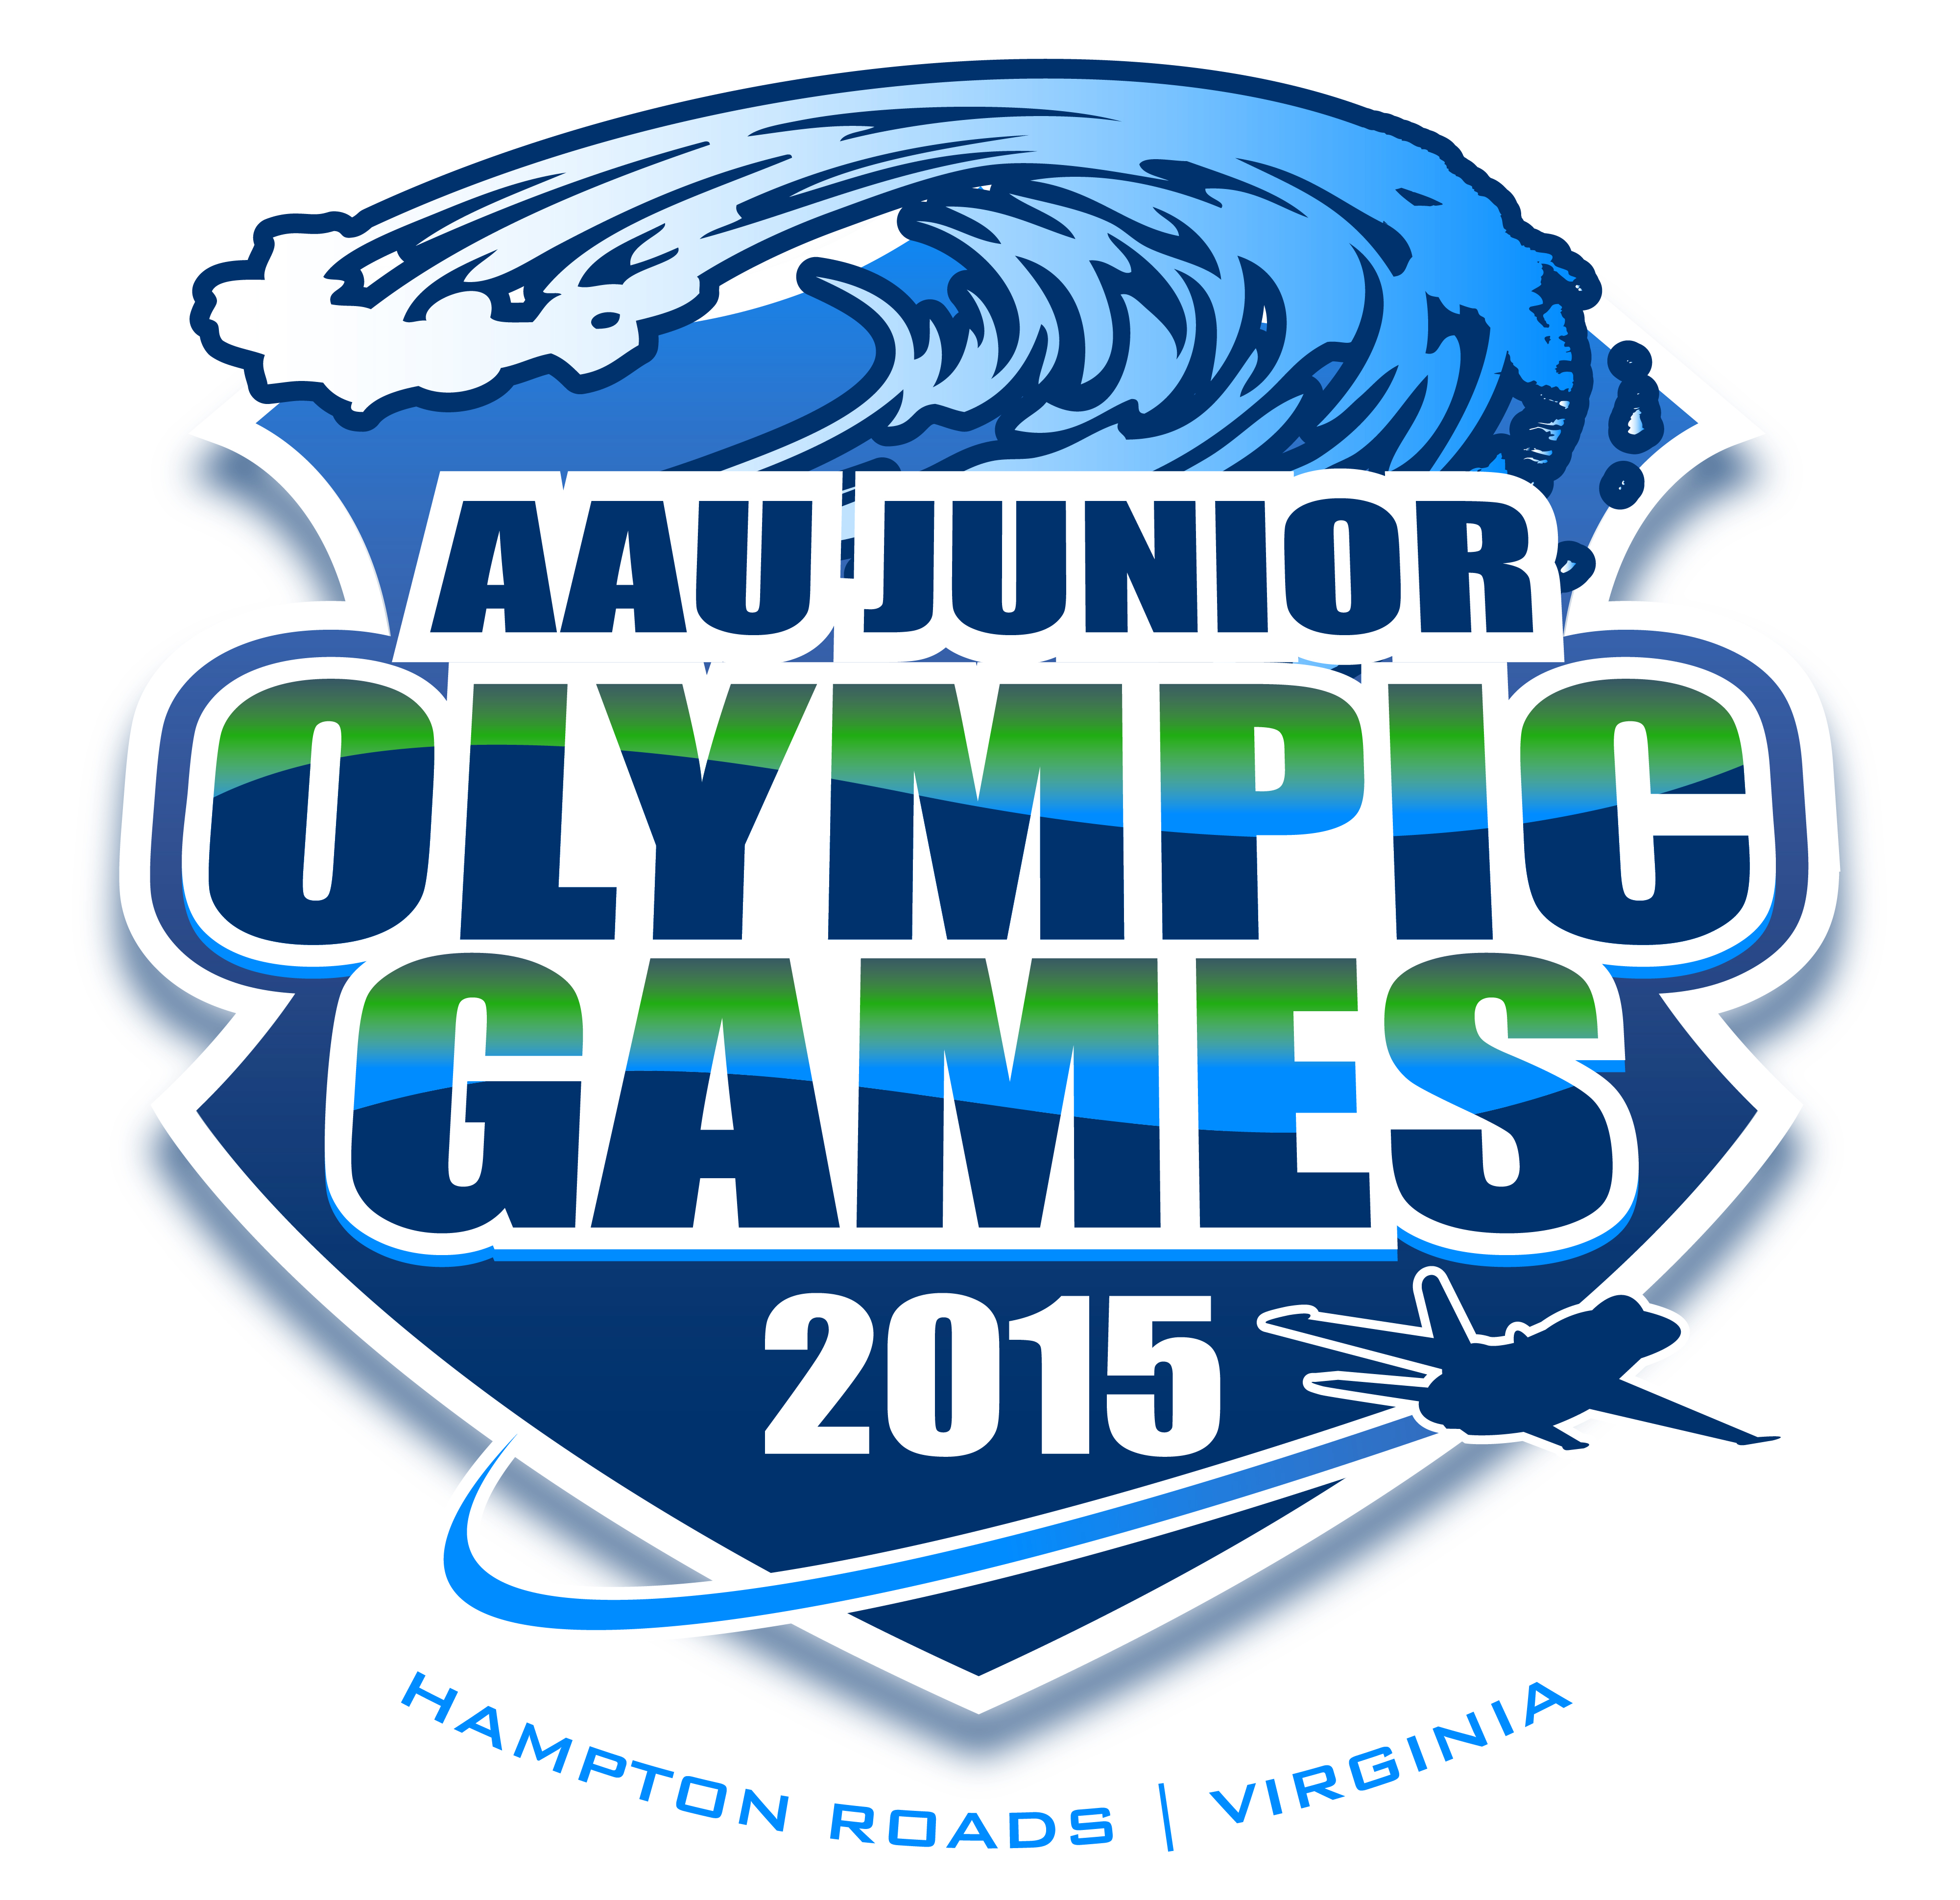 Hampton Roads Sports Commission Brings in 50 million to the Region Thanks to the 2015 AAU Junior Olympics